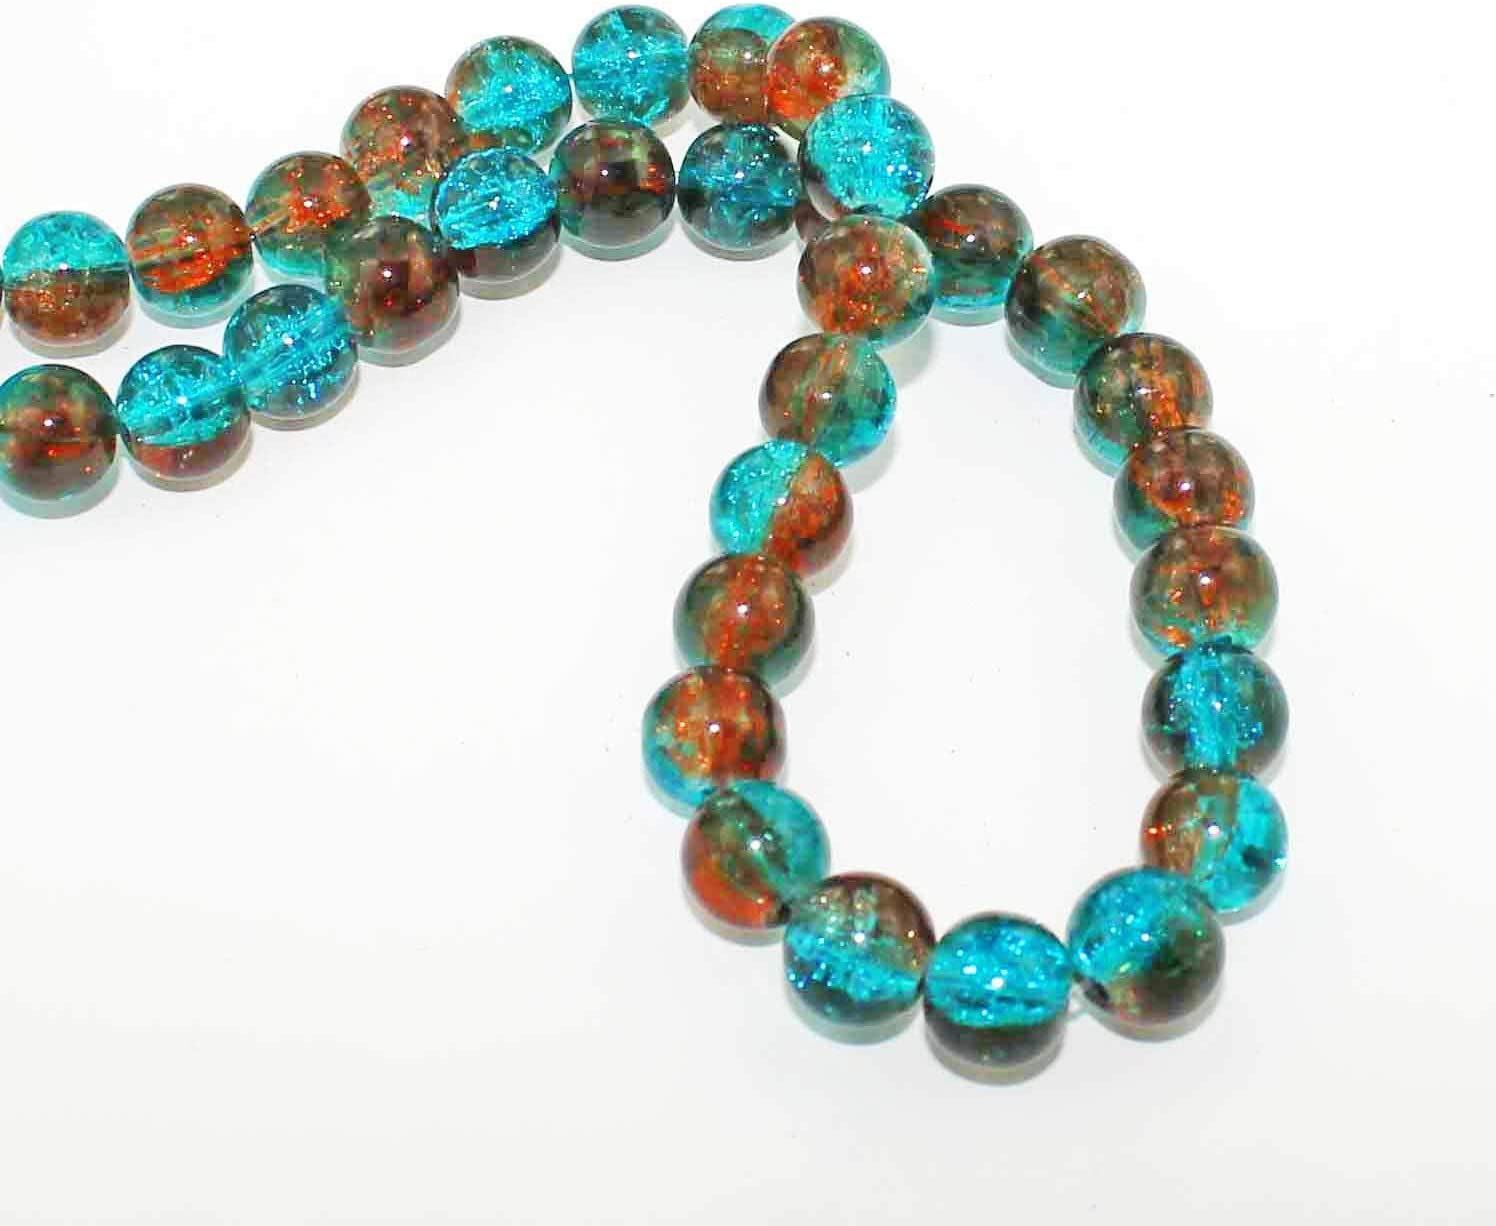 Simply Stunning Tones of Aqua and Sienna BD101 20 Crackle Glass Beads 10mm